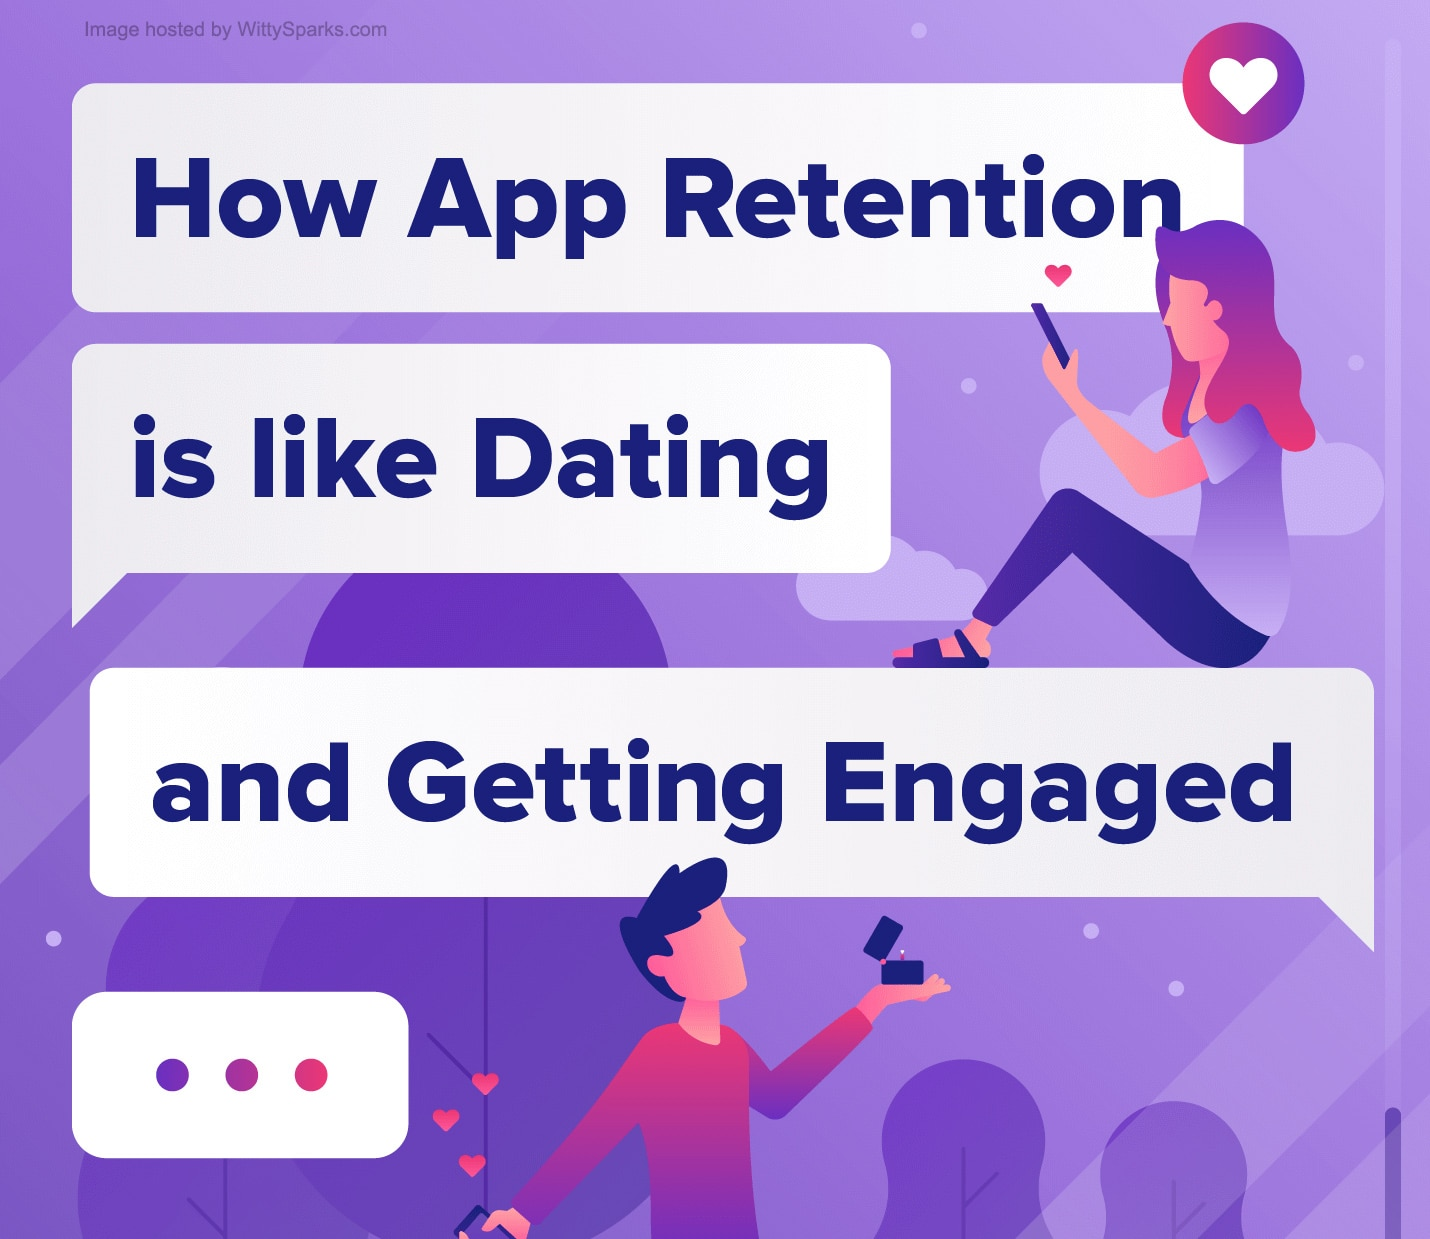 Why App Retention is like Dating